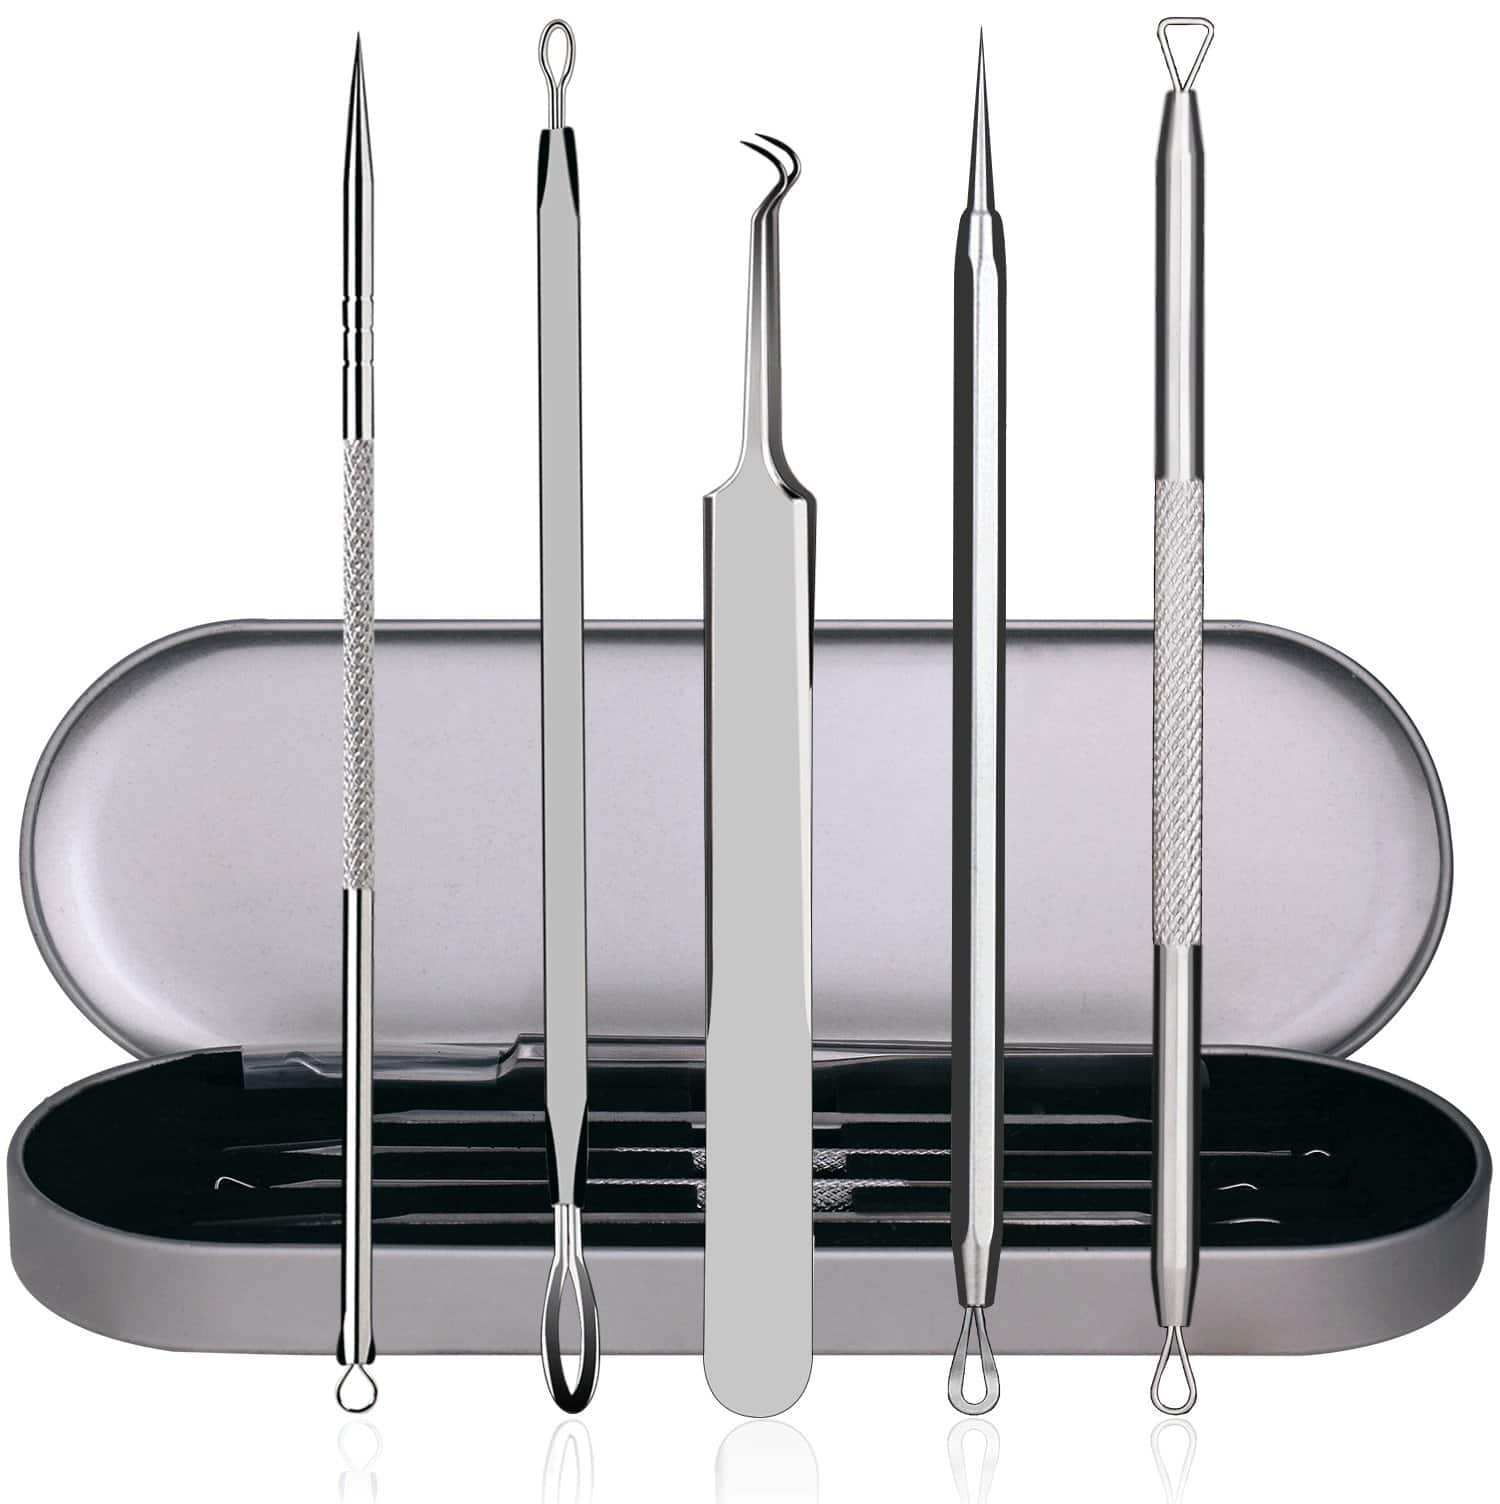 Blackhead Remover Kit with Travel Case $5.49